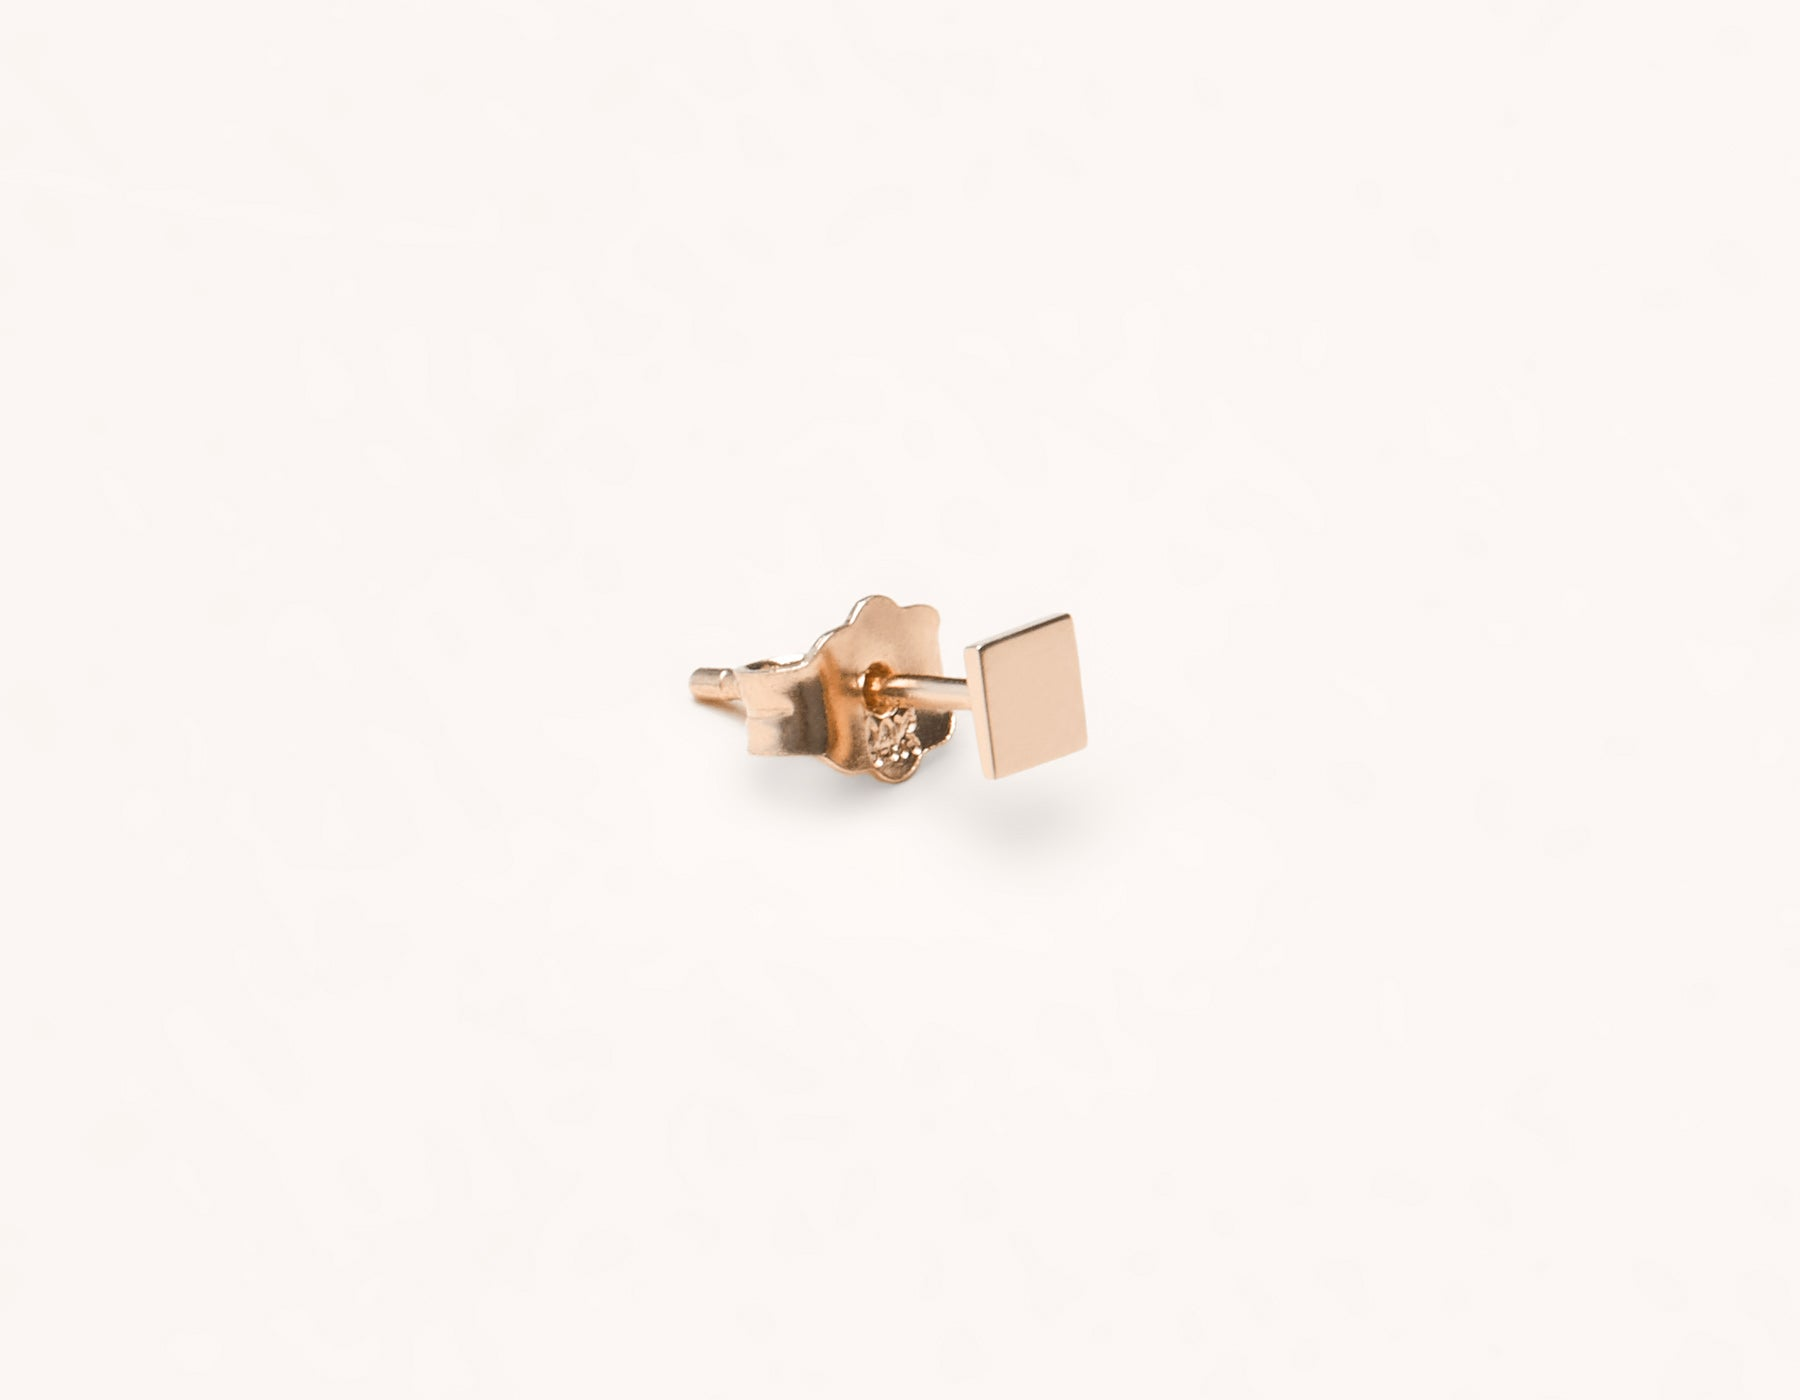 Basic subtle Square Stud earring 14k solid gold Vrai & Oro versatile jewelry, 14K Rose Gold